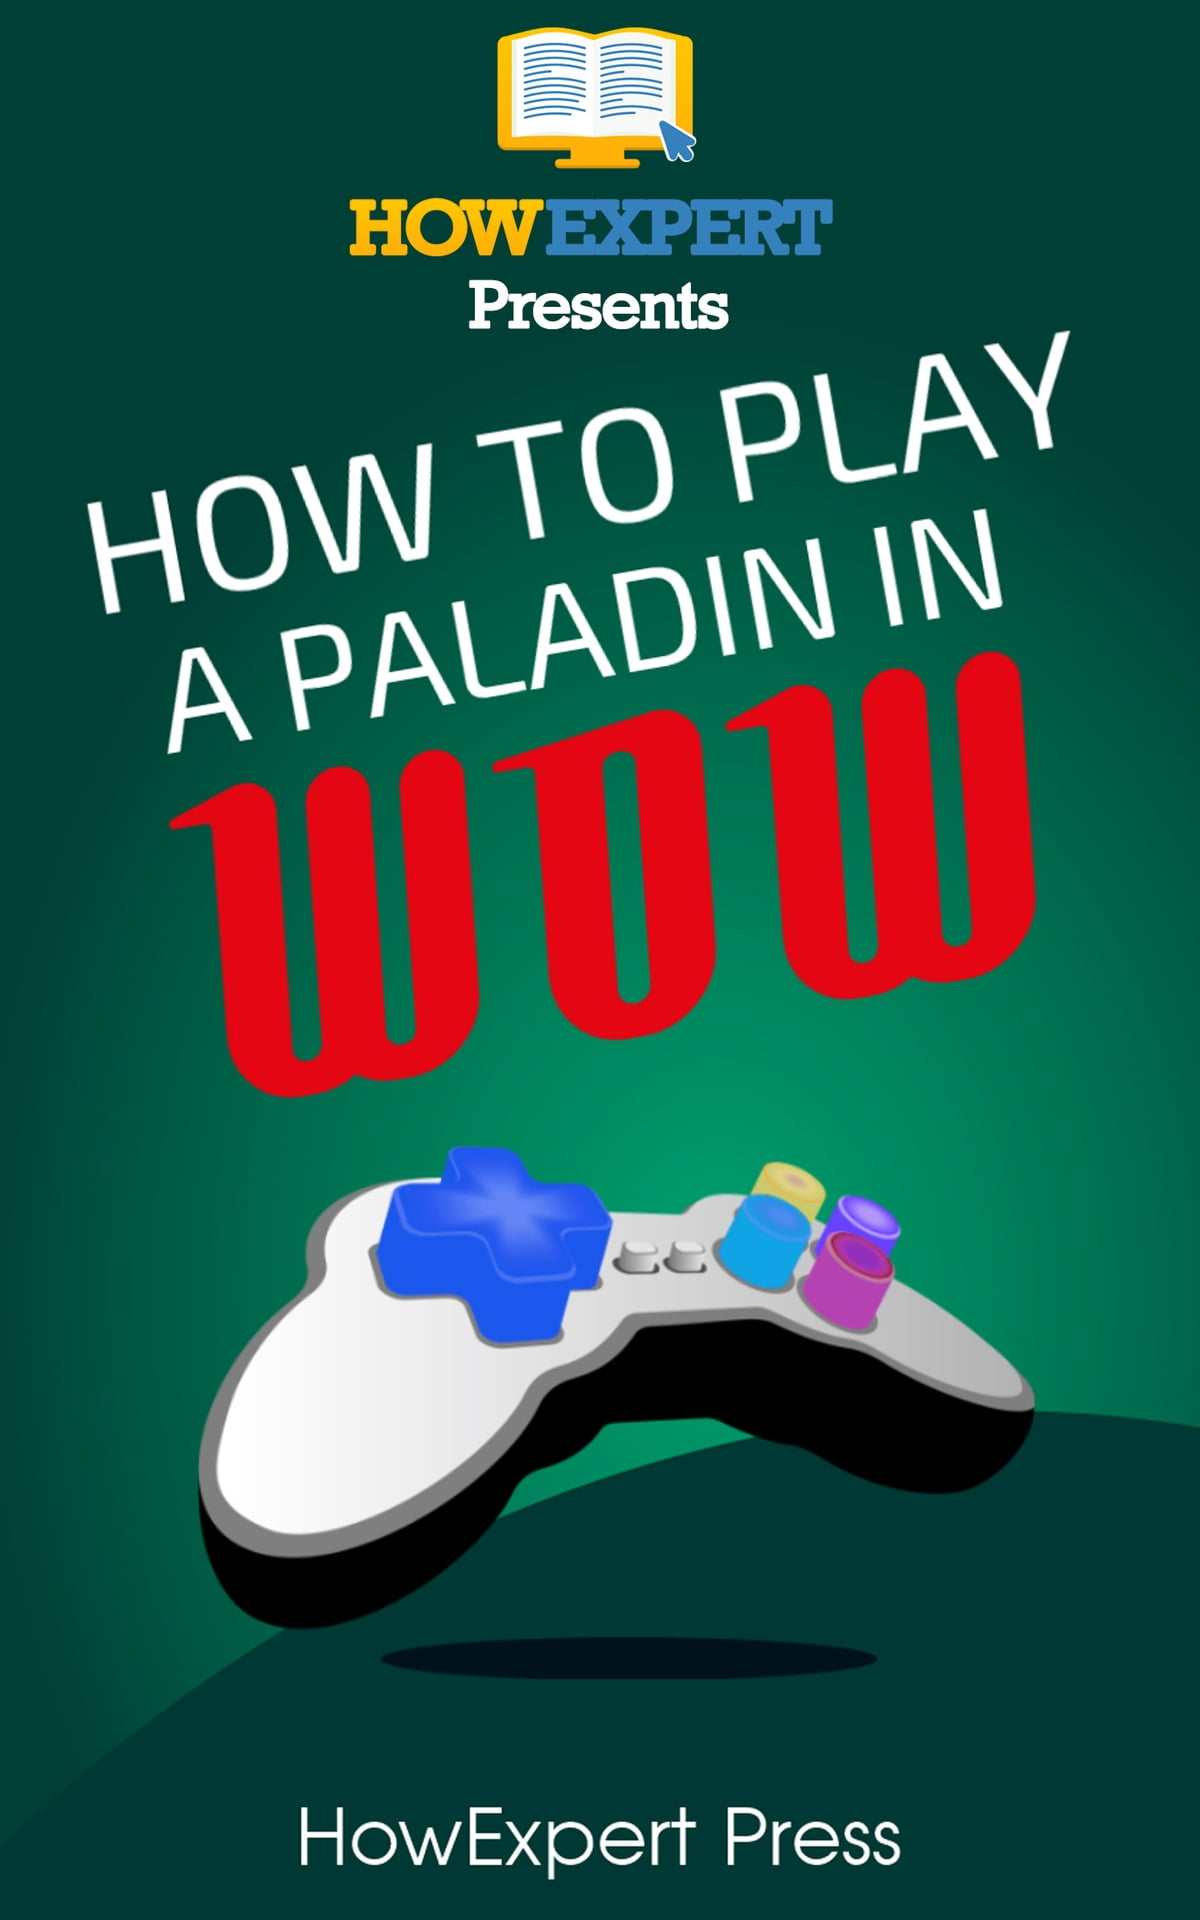 How To Play a Paladin In WoW ebook by HowExpert - Rakuten Kobo